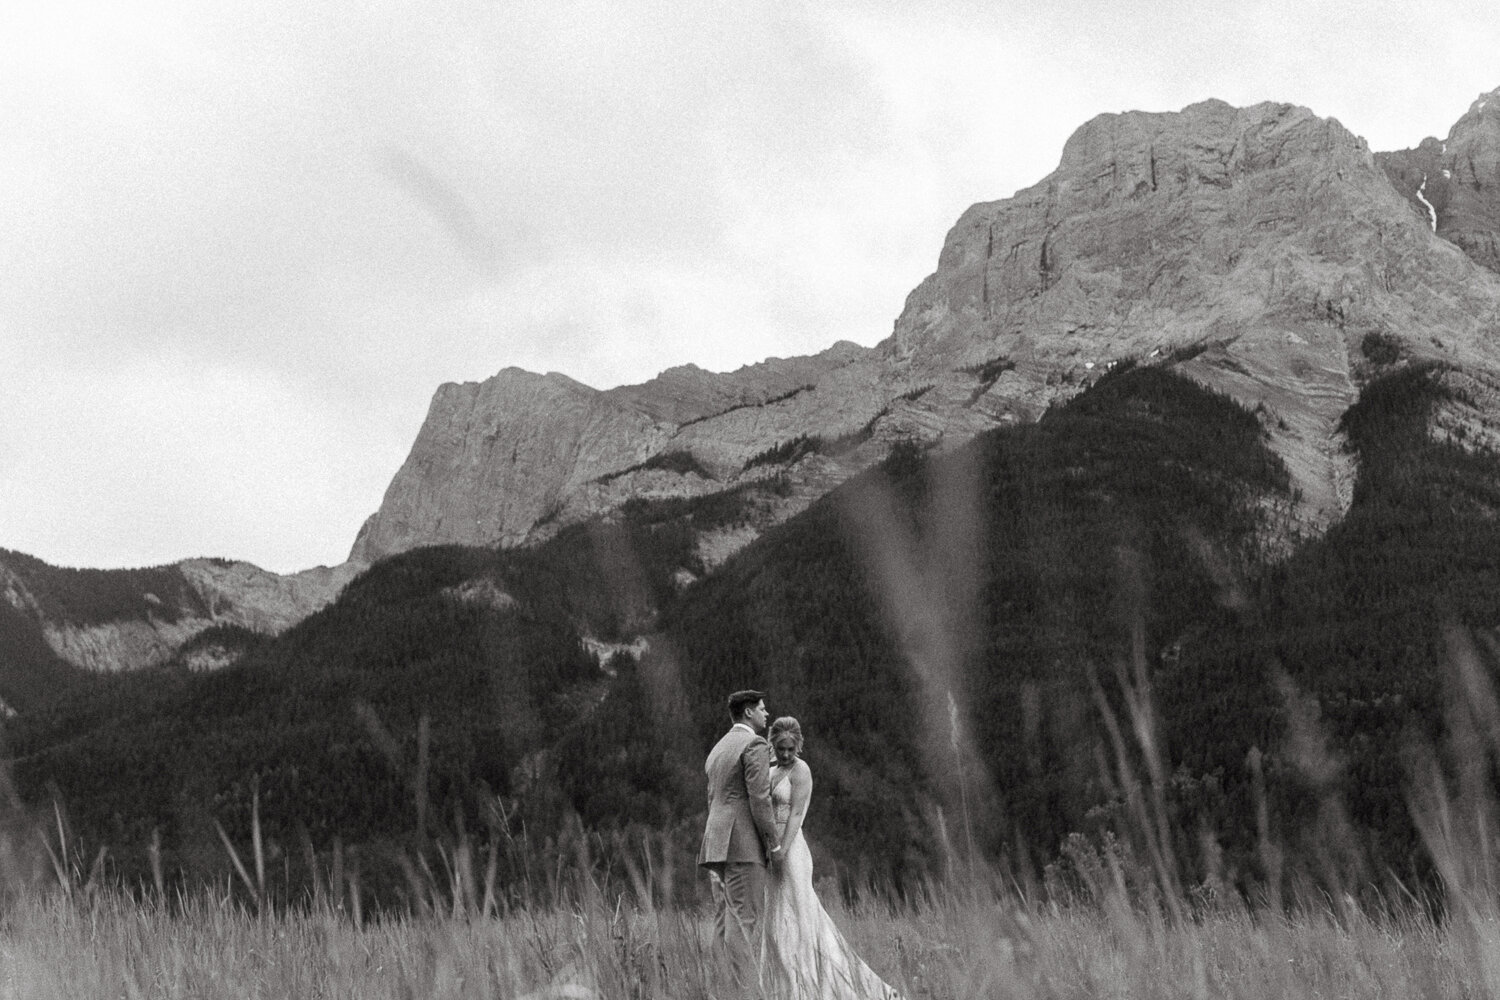 108-Canmore-Alberta-Real-Wedding-Best-Wedding-Photographers-182.JPG